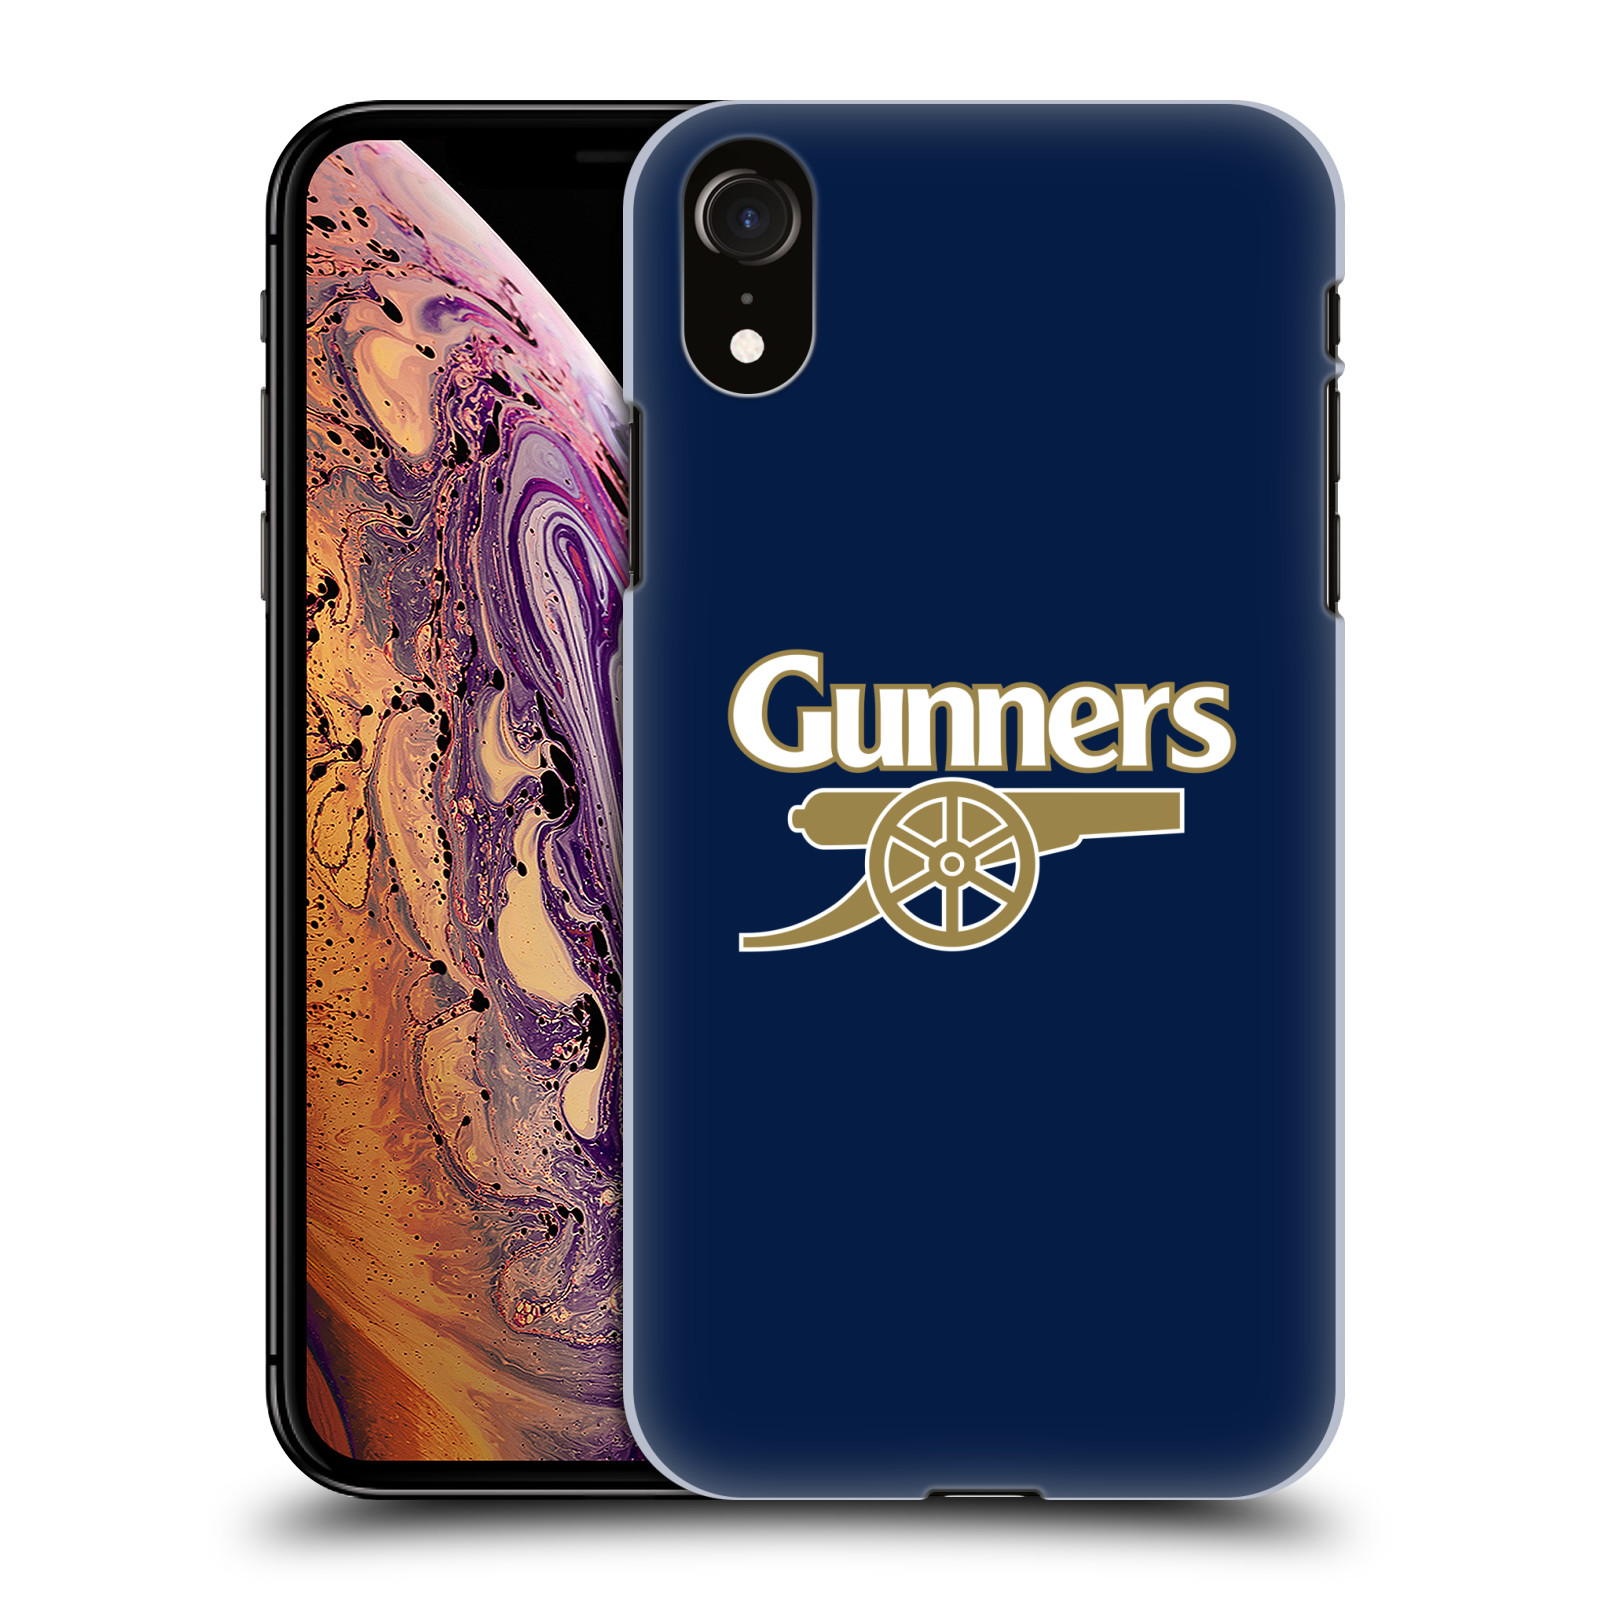 Plastové pouzdro na mobil Apple iPhone XR - Head Case - Arsenal FC - Gunners